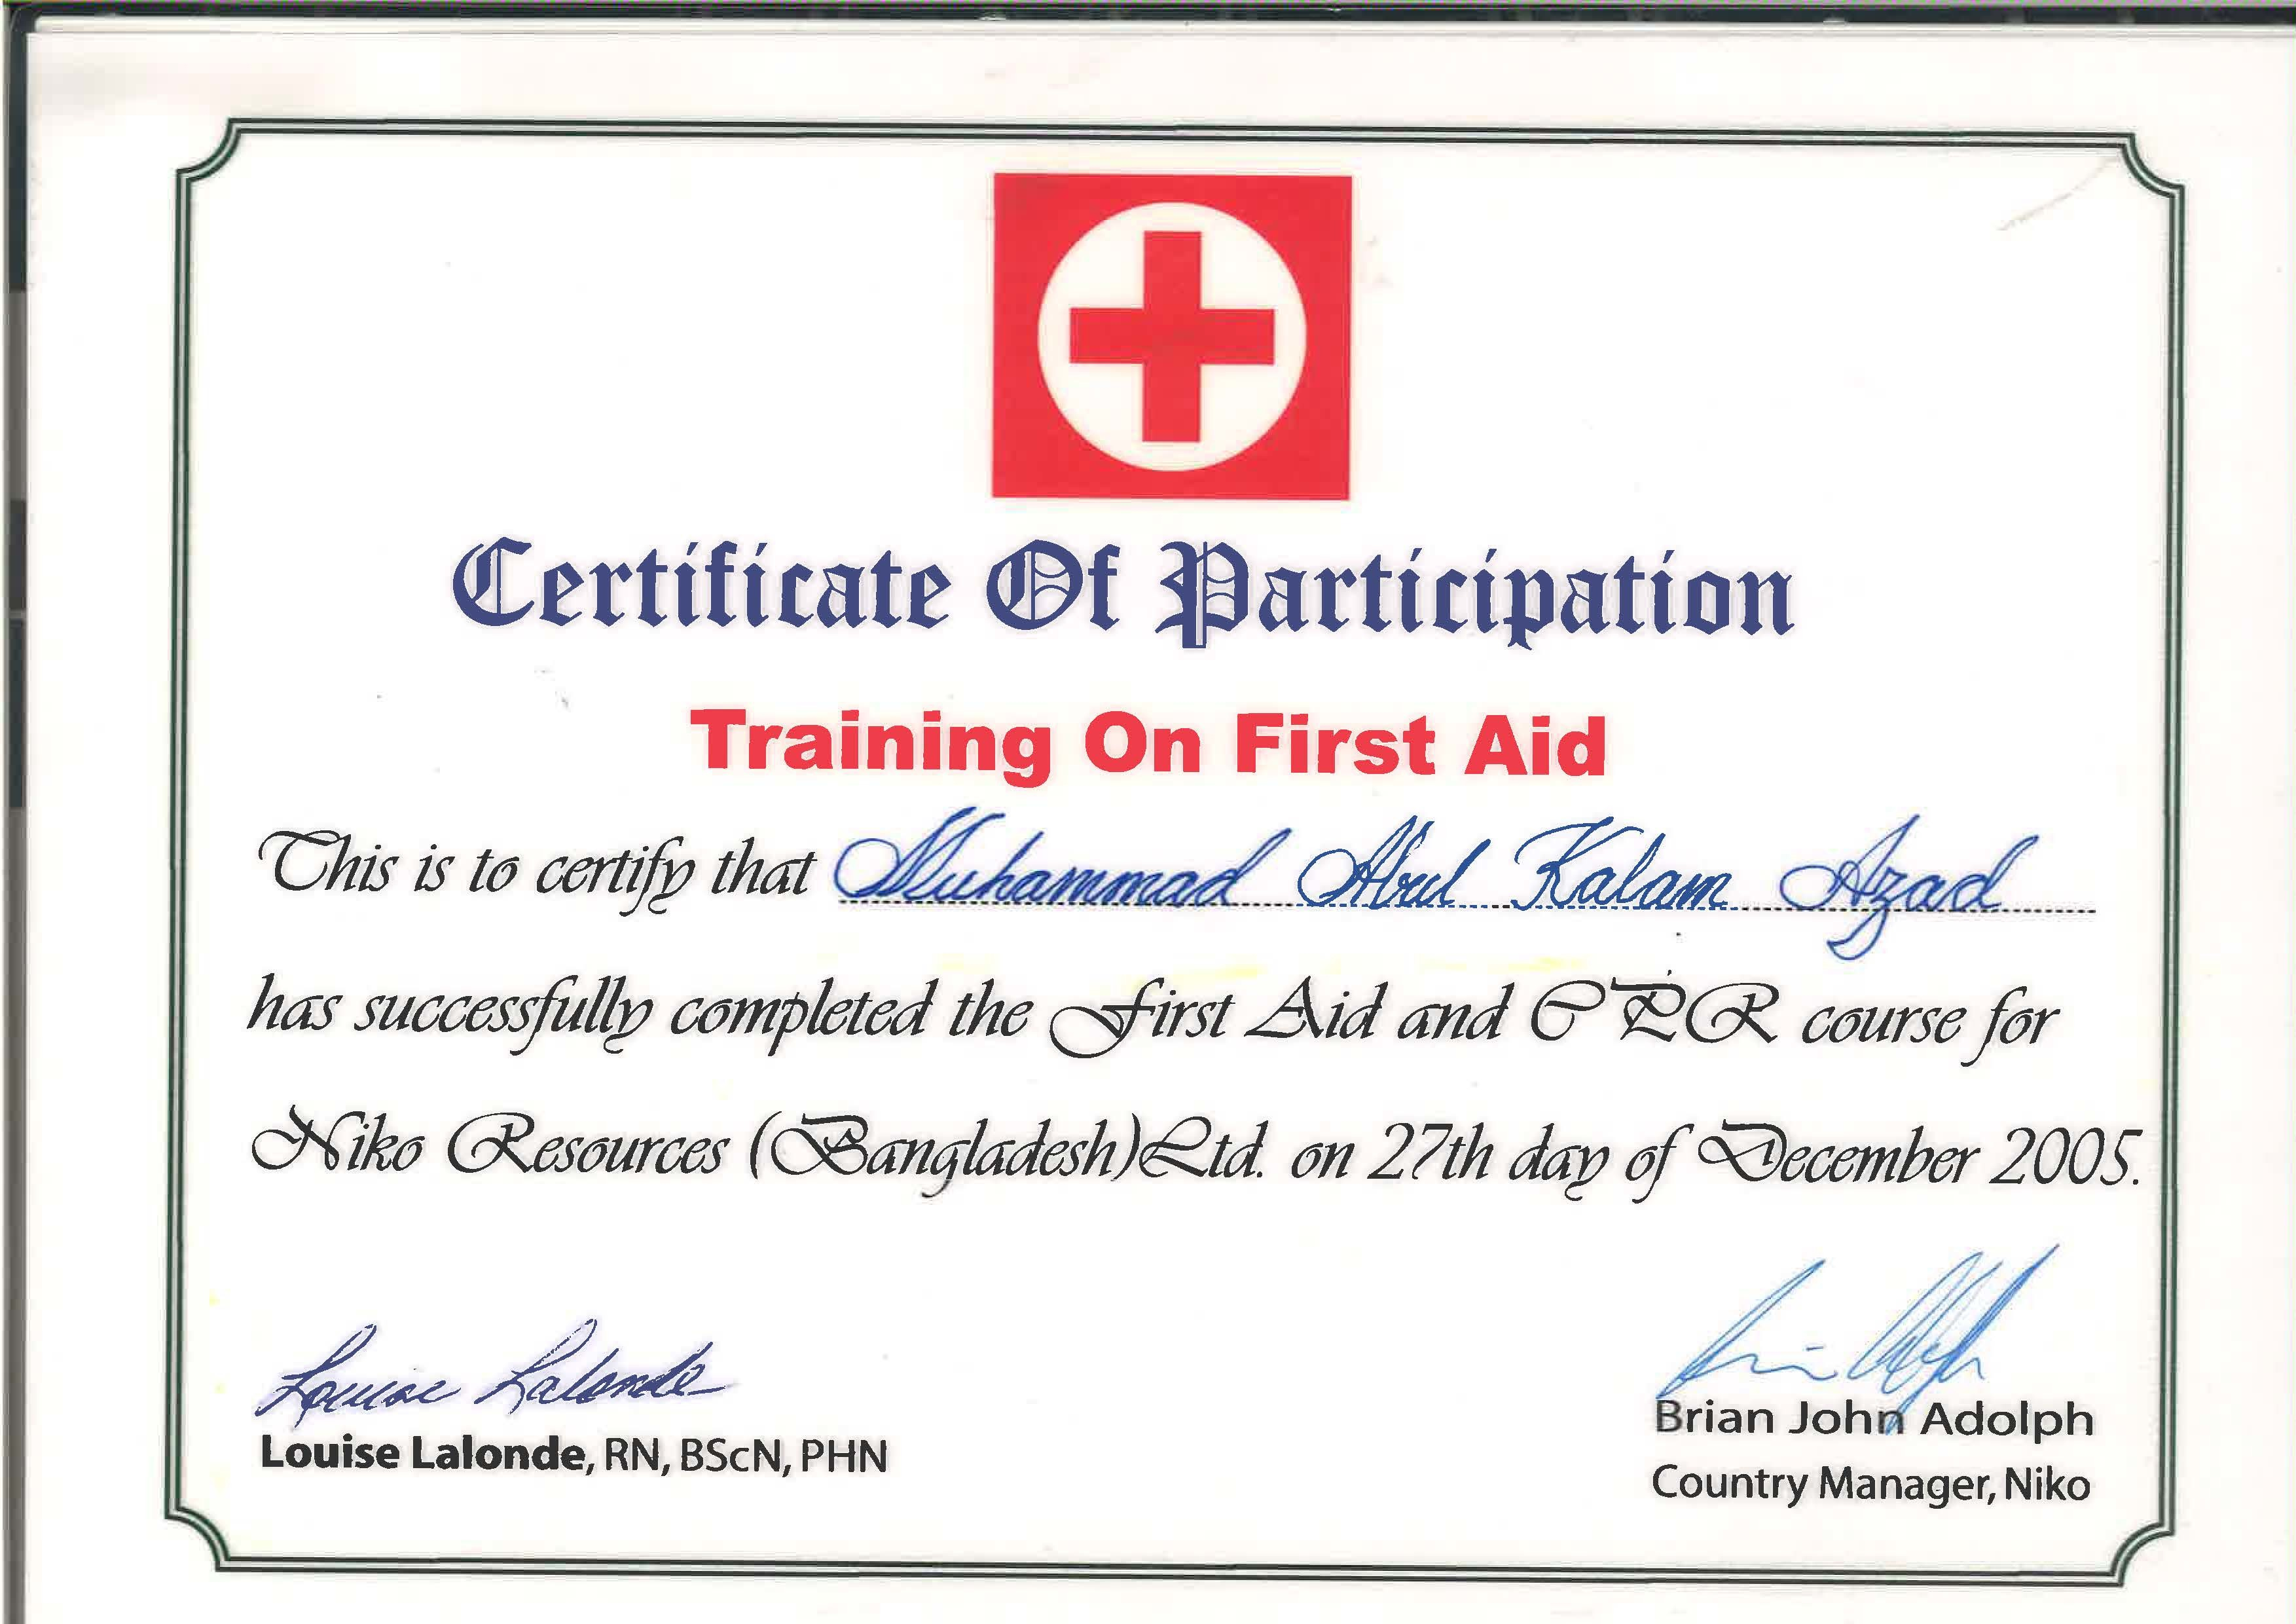 Certificate first aid training certificate mortgage templates muhammad abul kalam azad fcma baytcom 4174126 1487325848 54 muhammadabulkalam azadcma certificate first aid training certificate xflitez Gallery